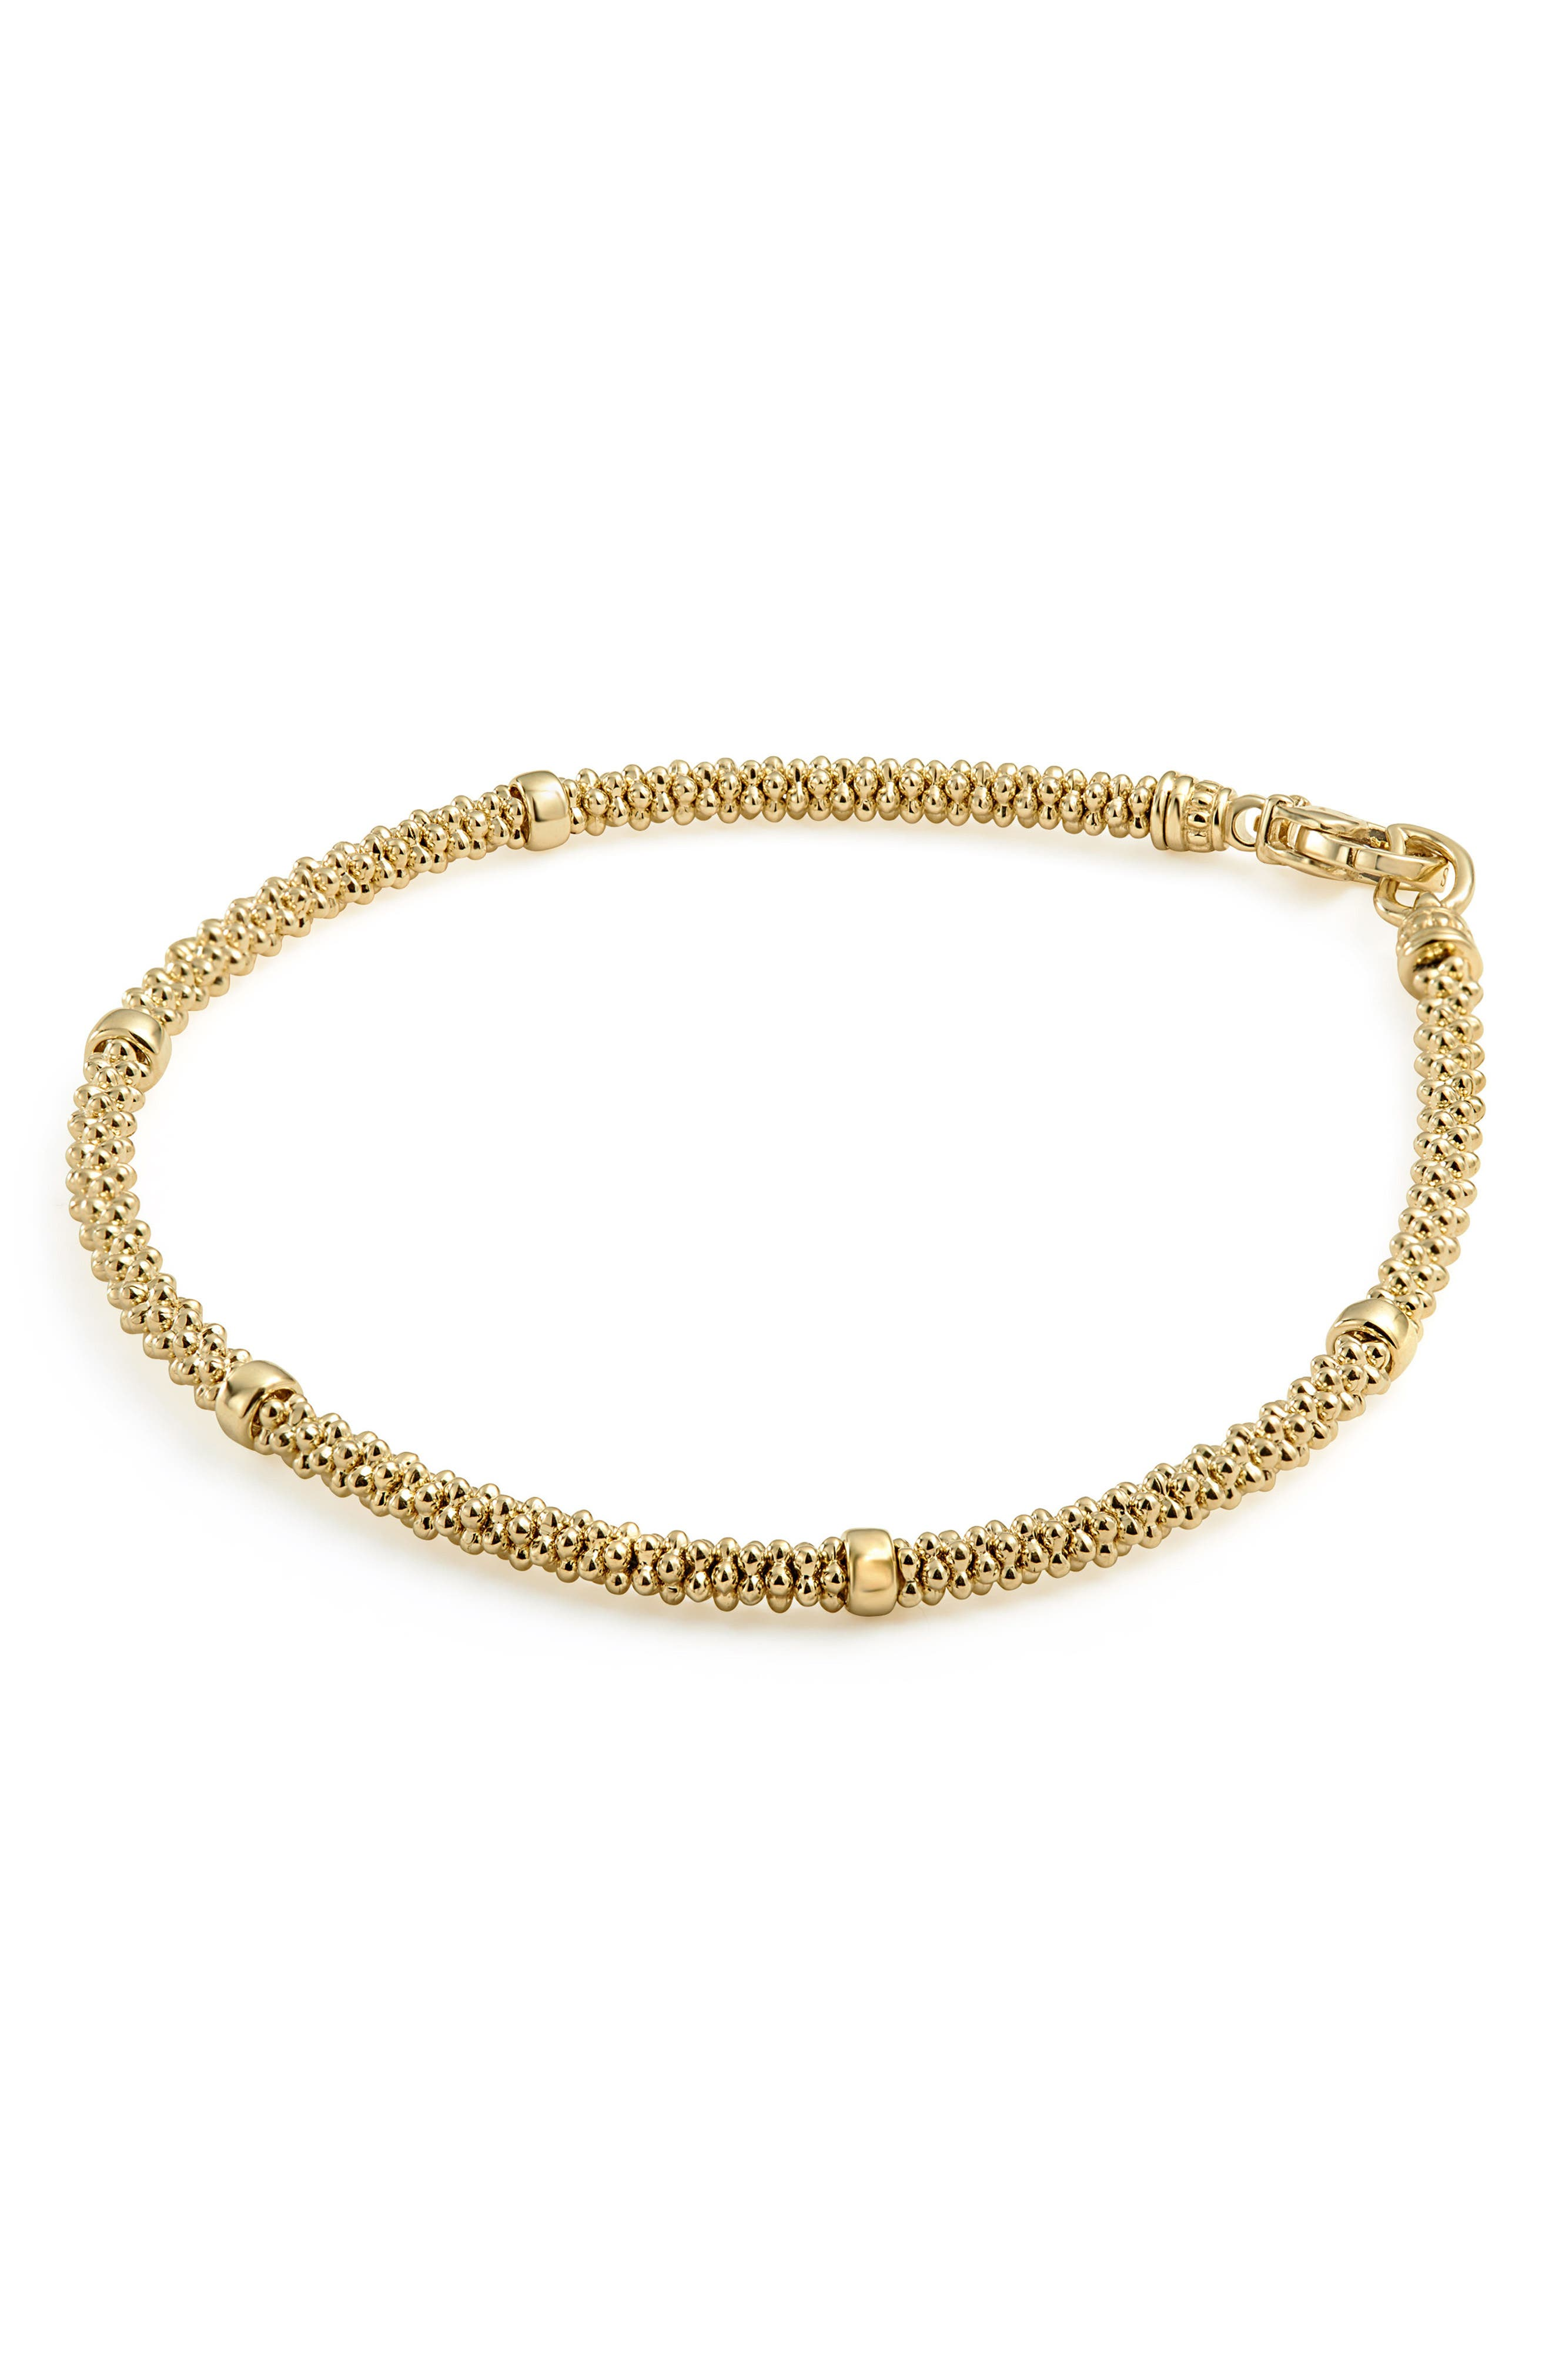 Caviar Gold Rope Bracelet,                             Alternate thumbnail 4, color,                             Gold